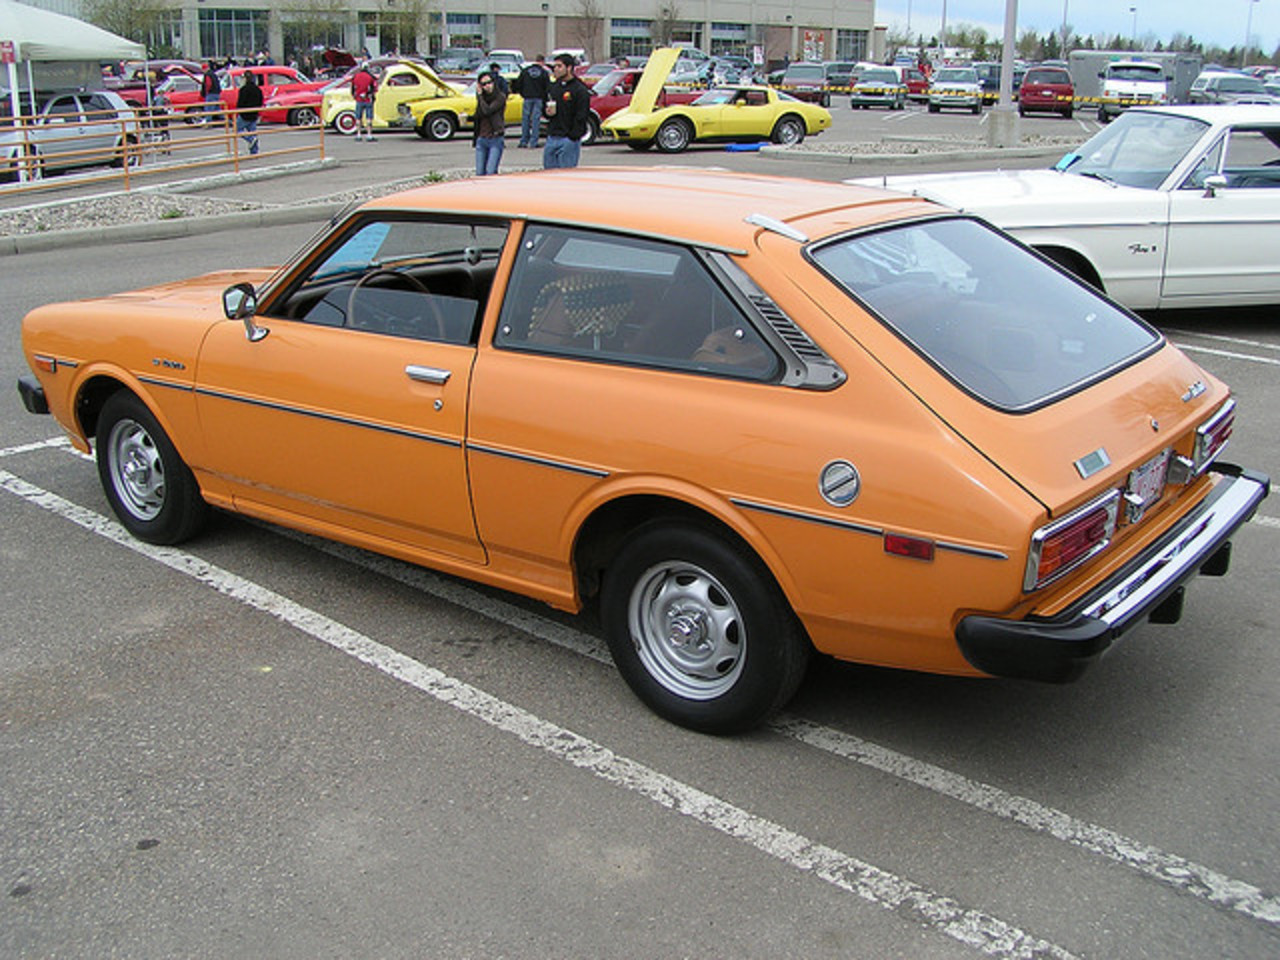 Toyota Corolla Liftback | Flickr - Photo Sharing!